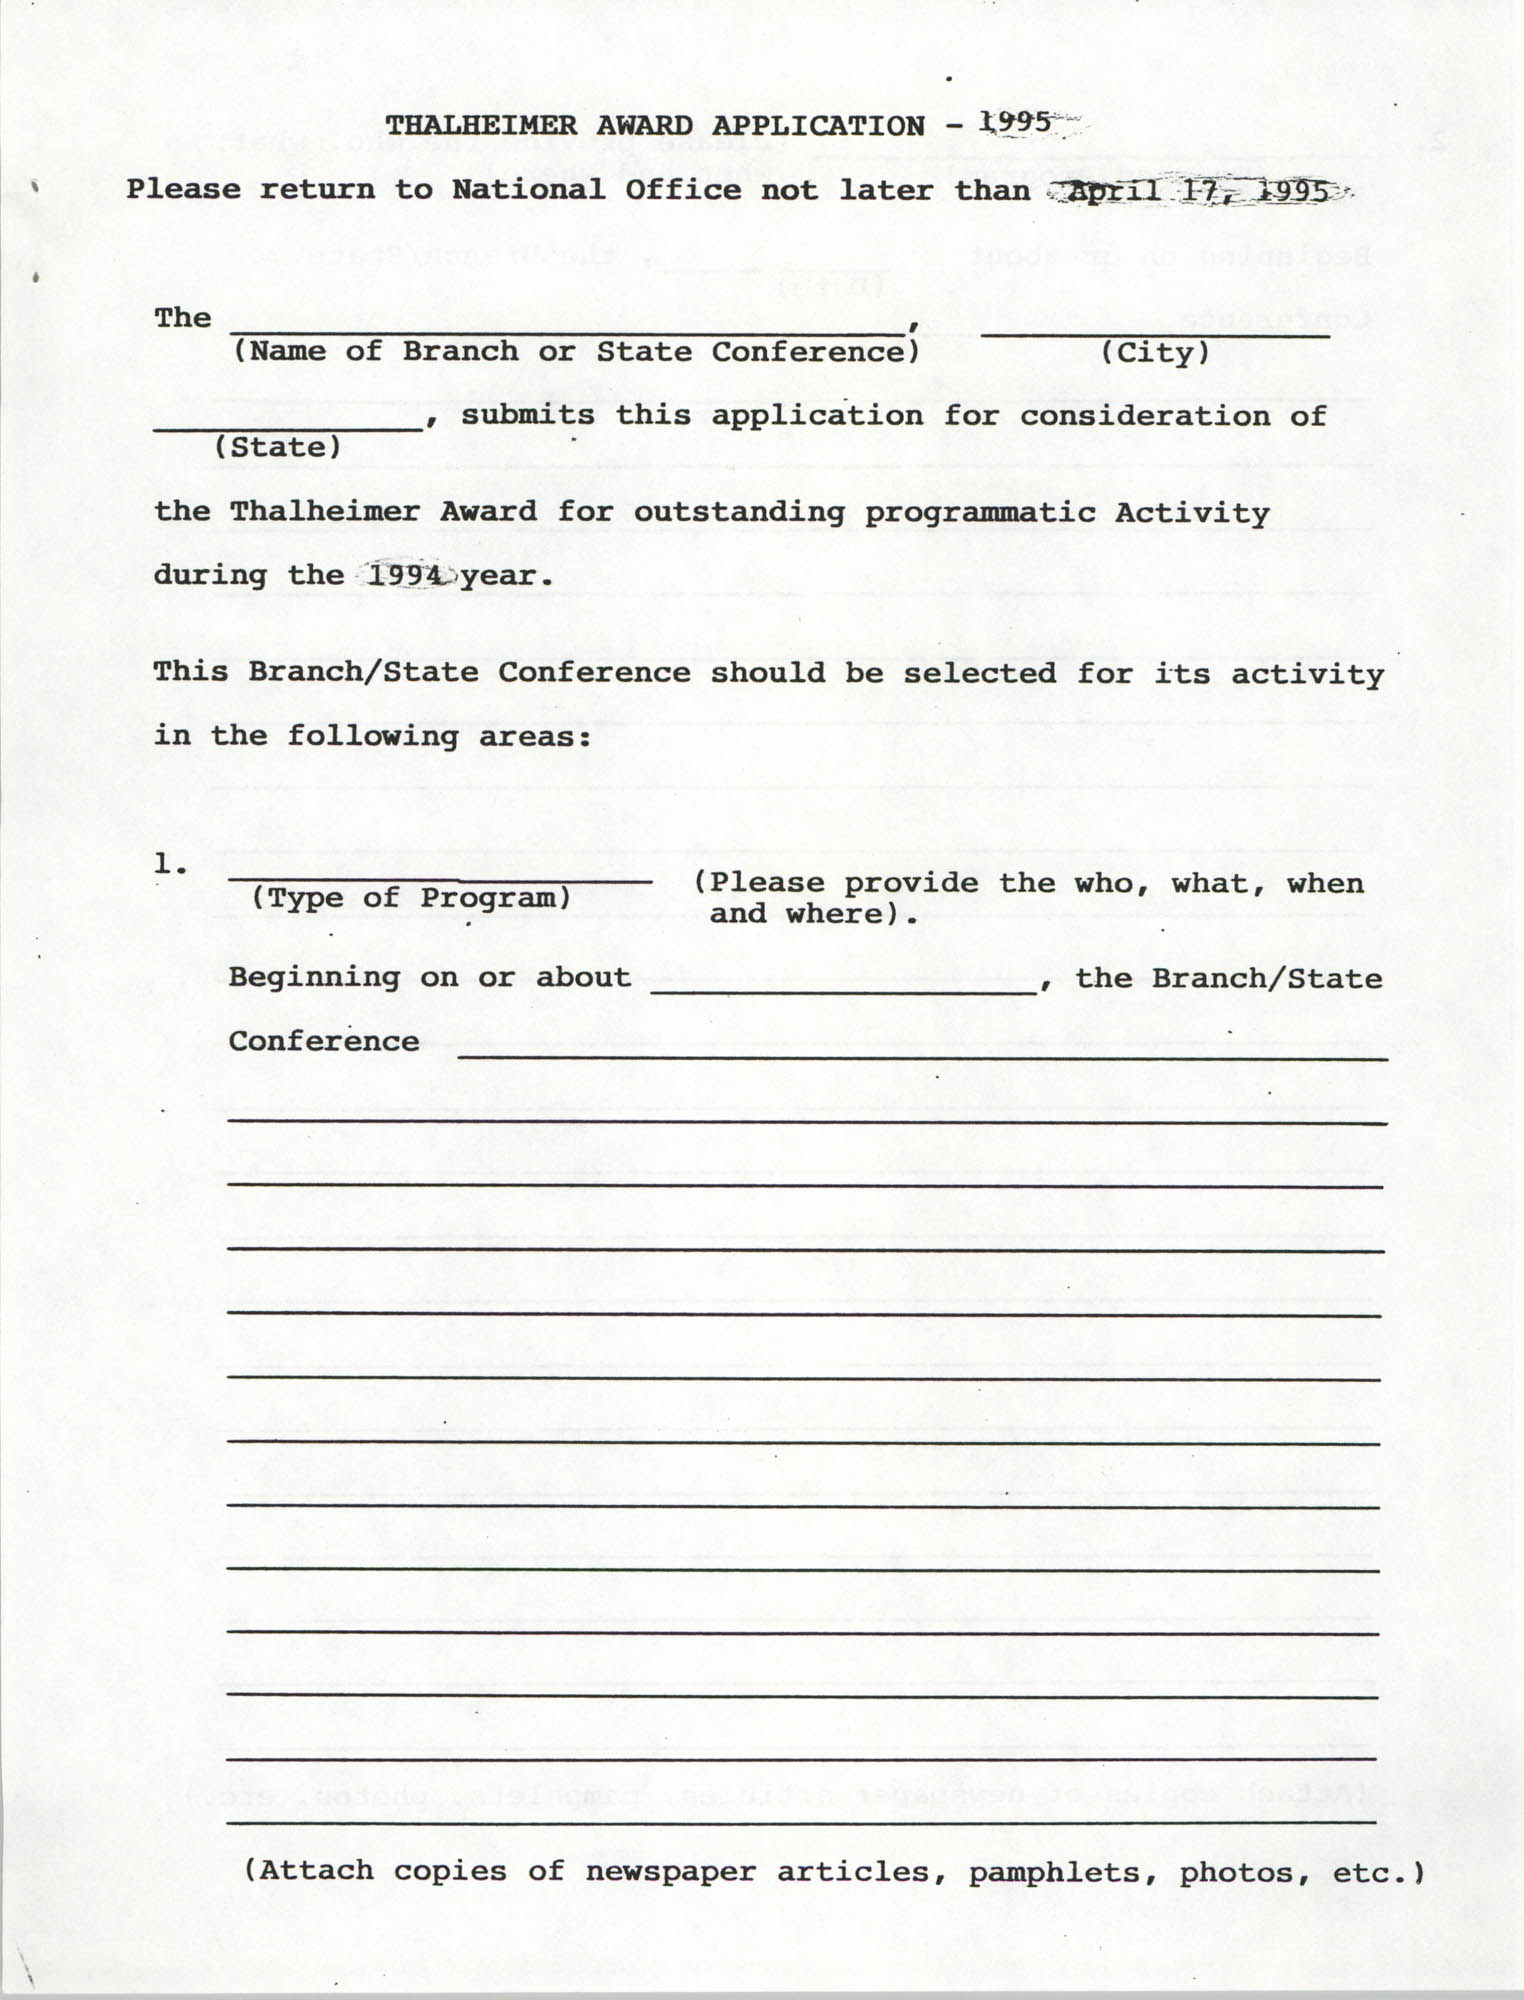 Thalheimer Award Application, NAACP, 1995